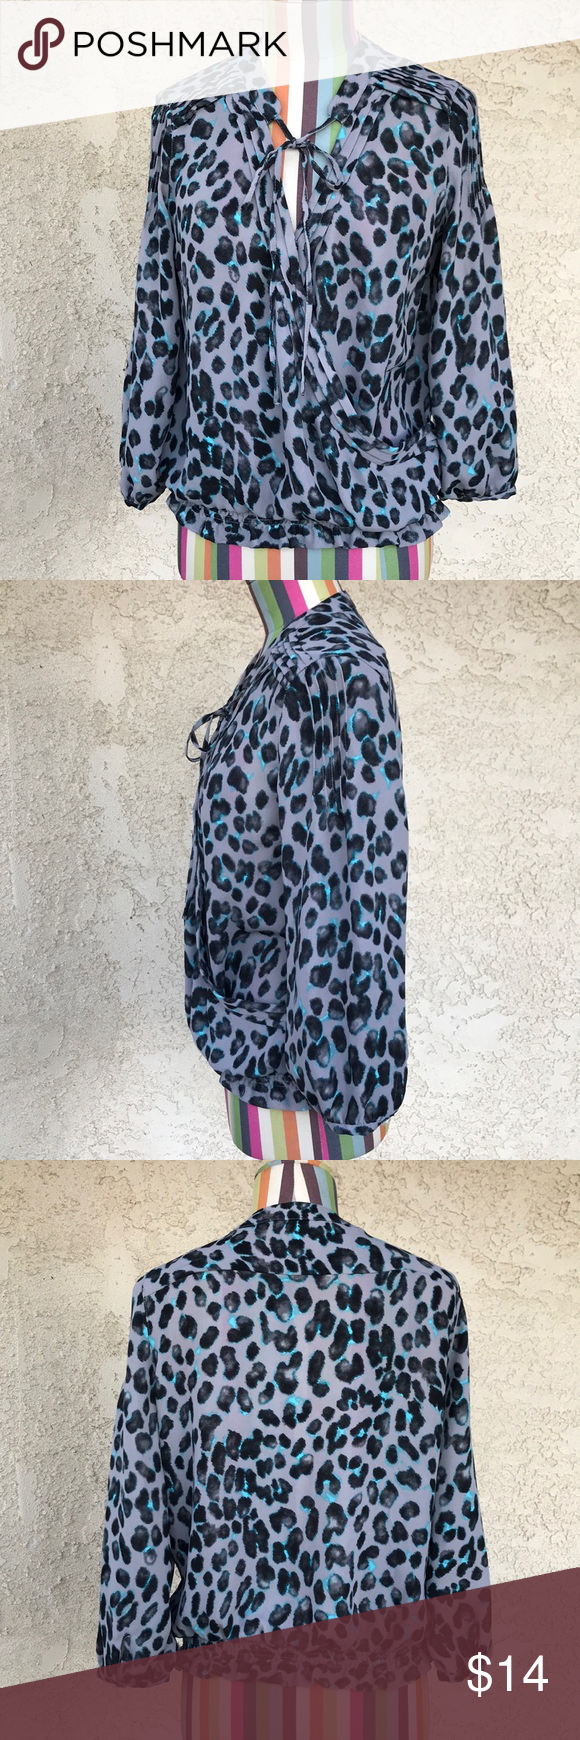 """New York & Company Blouse 100% polyester   Gray and blue leopard print blouse with folds details and elastic bottom. Great condition.  Length: 22"""" Pit to pit: 18.5"""" New York & Company Tops Blouses"""